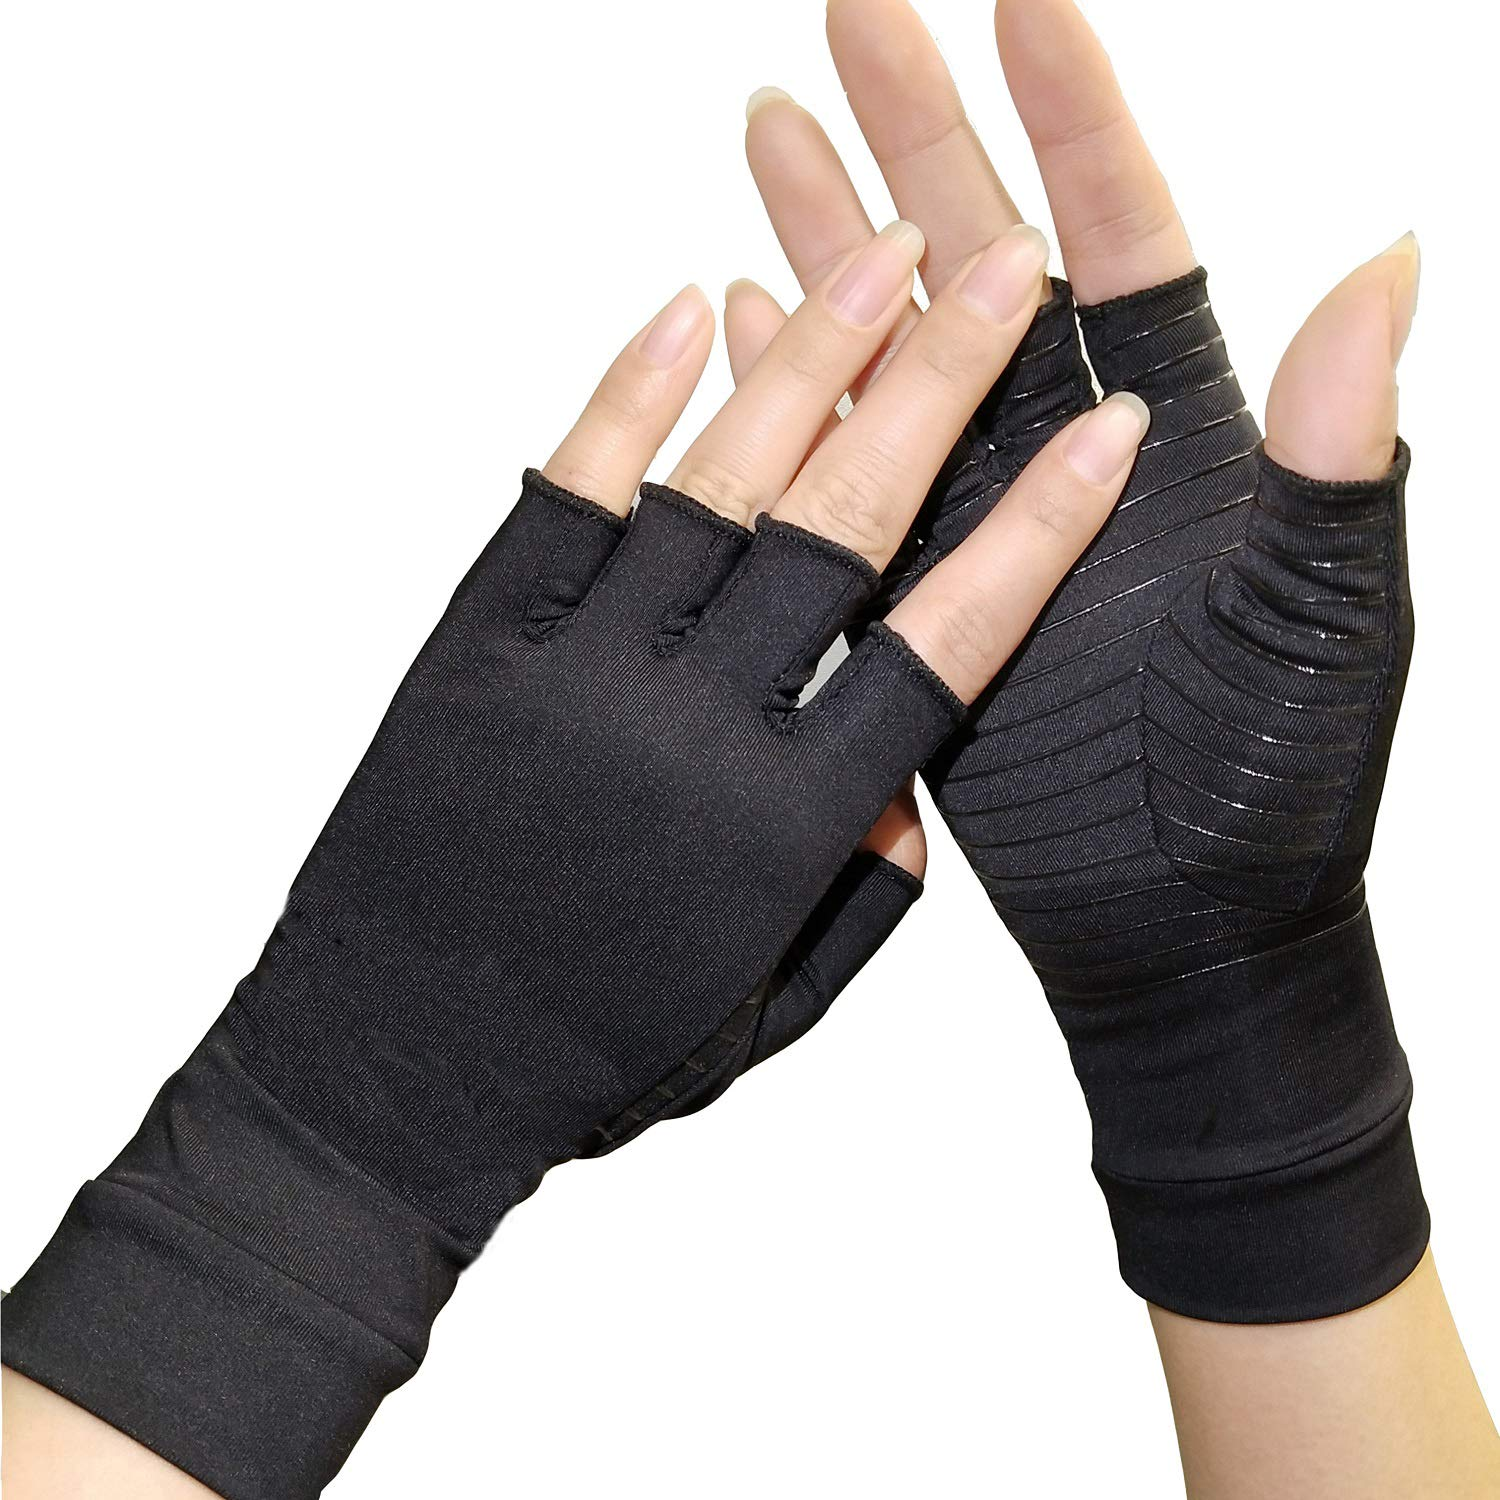 Arthritis  Compression Gloves Copper Compression Arthritis Gloves  Highest Copper Content Alleviate Rheumatoid Pains Ease Muscle Tension Relieve Carpal Tunnel Aches(1 Pair) M